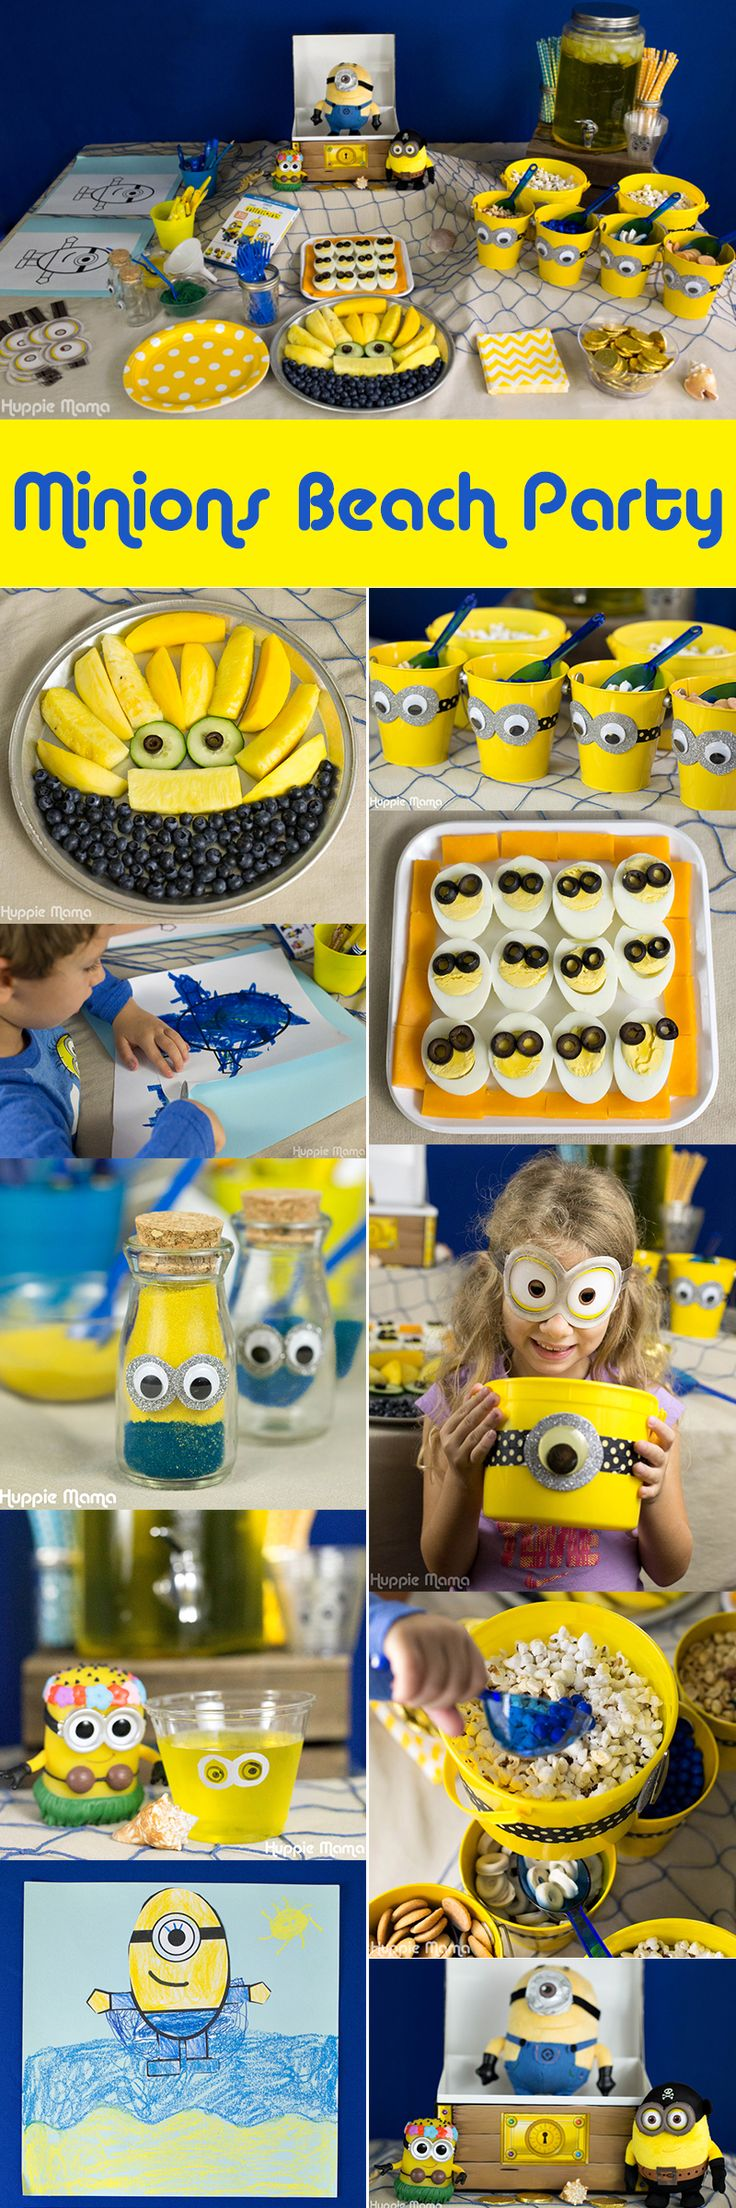 Minions Beach Party #MinionsMovieNight ad